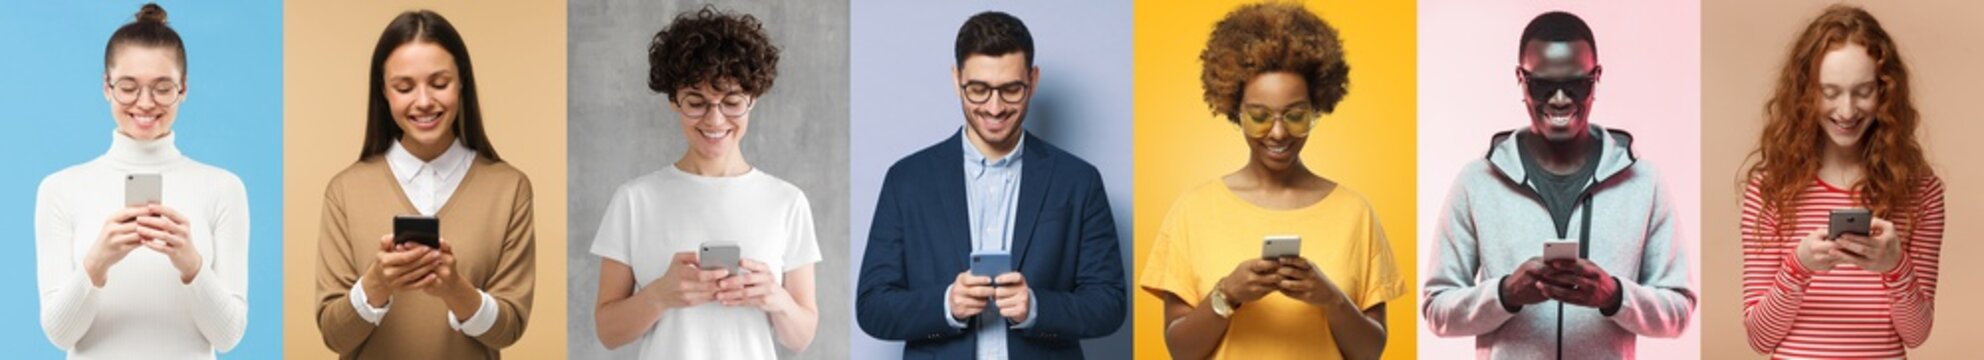 Many people with phones collection. Group of smiling men and women texting or browsing with smartphones